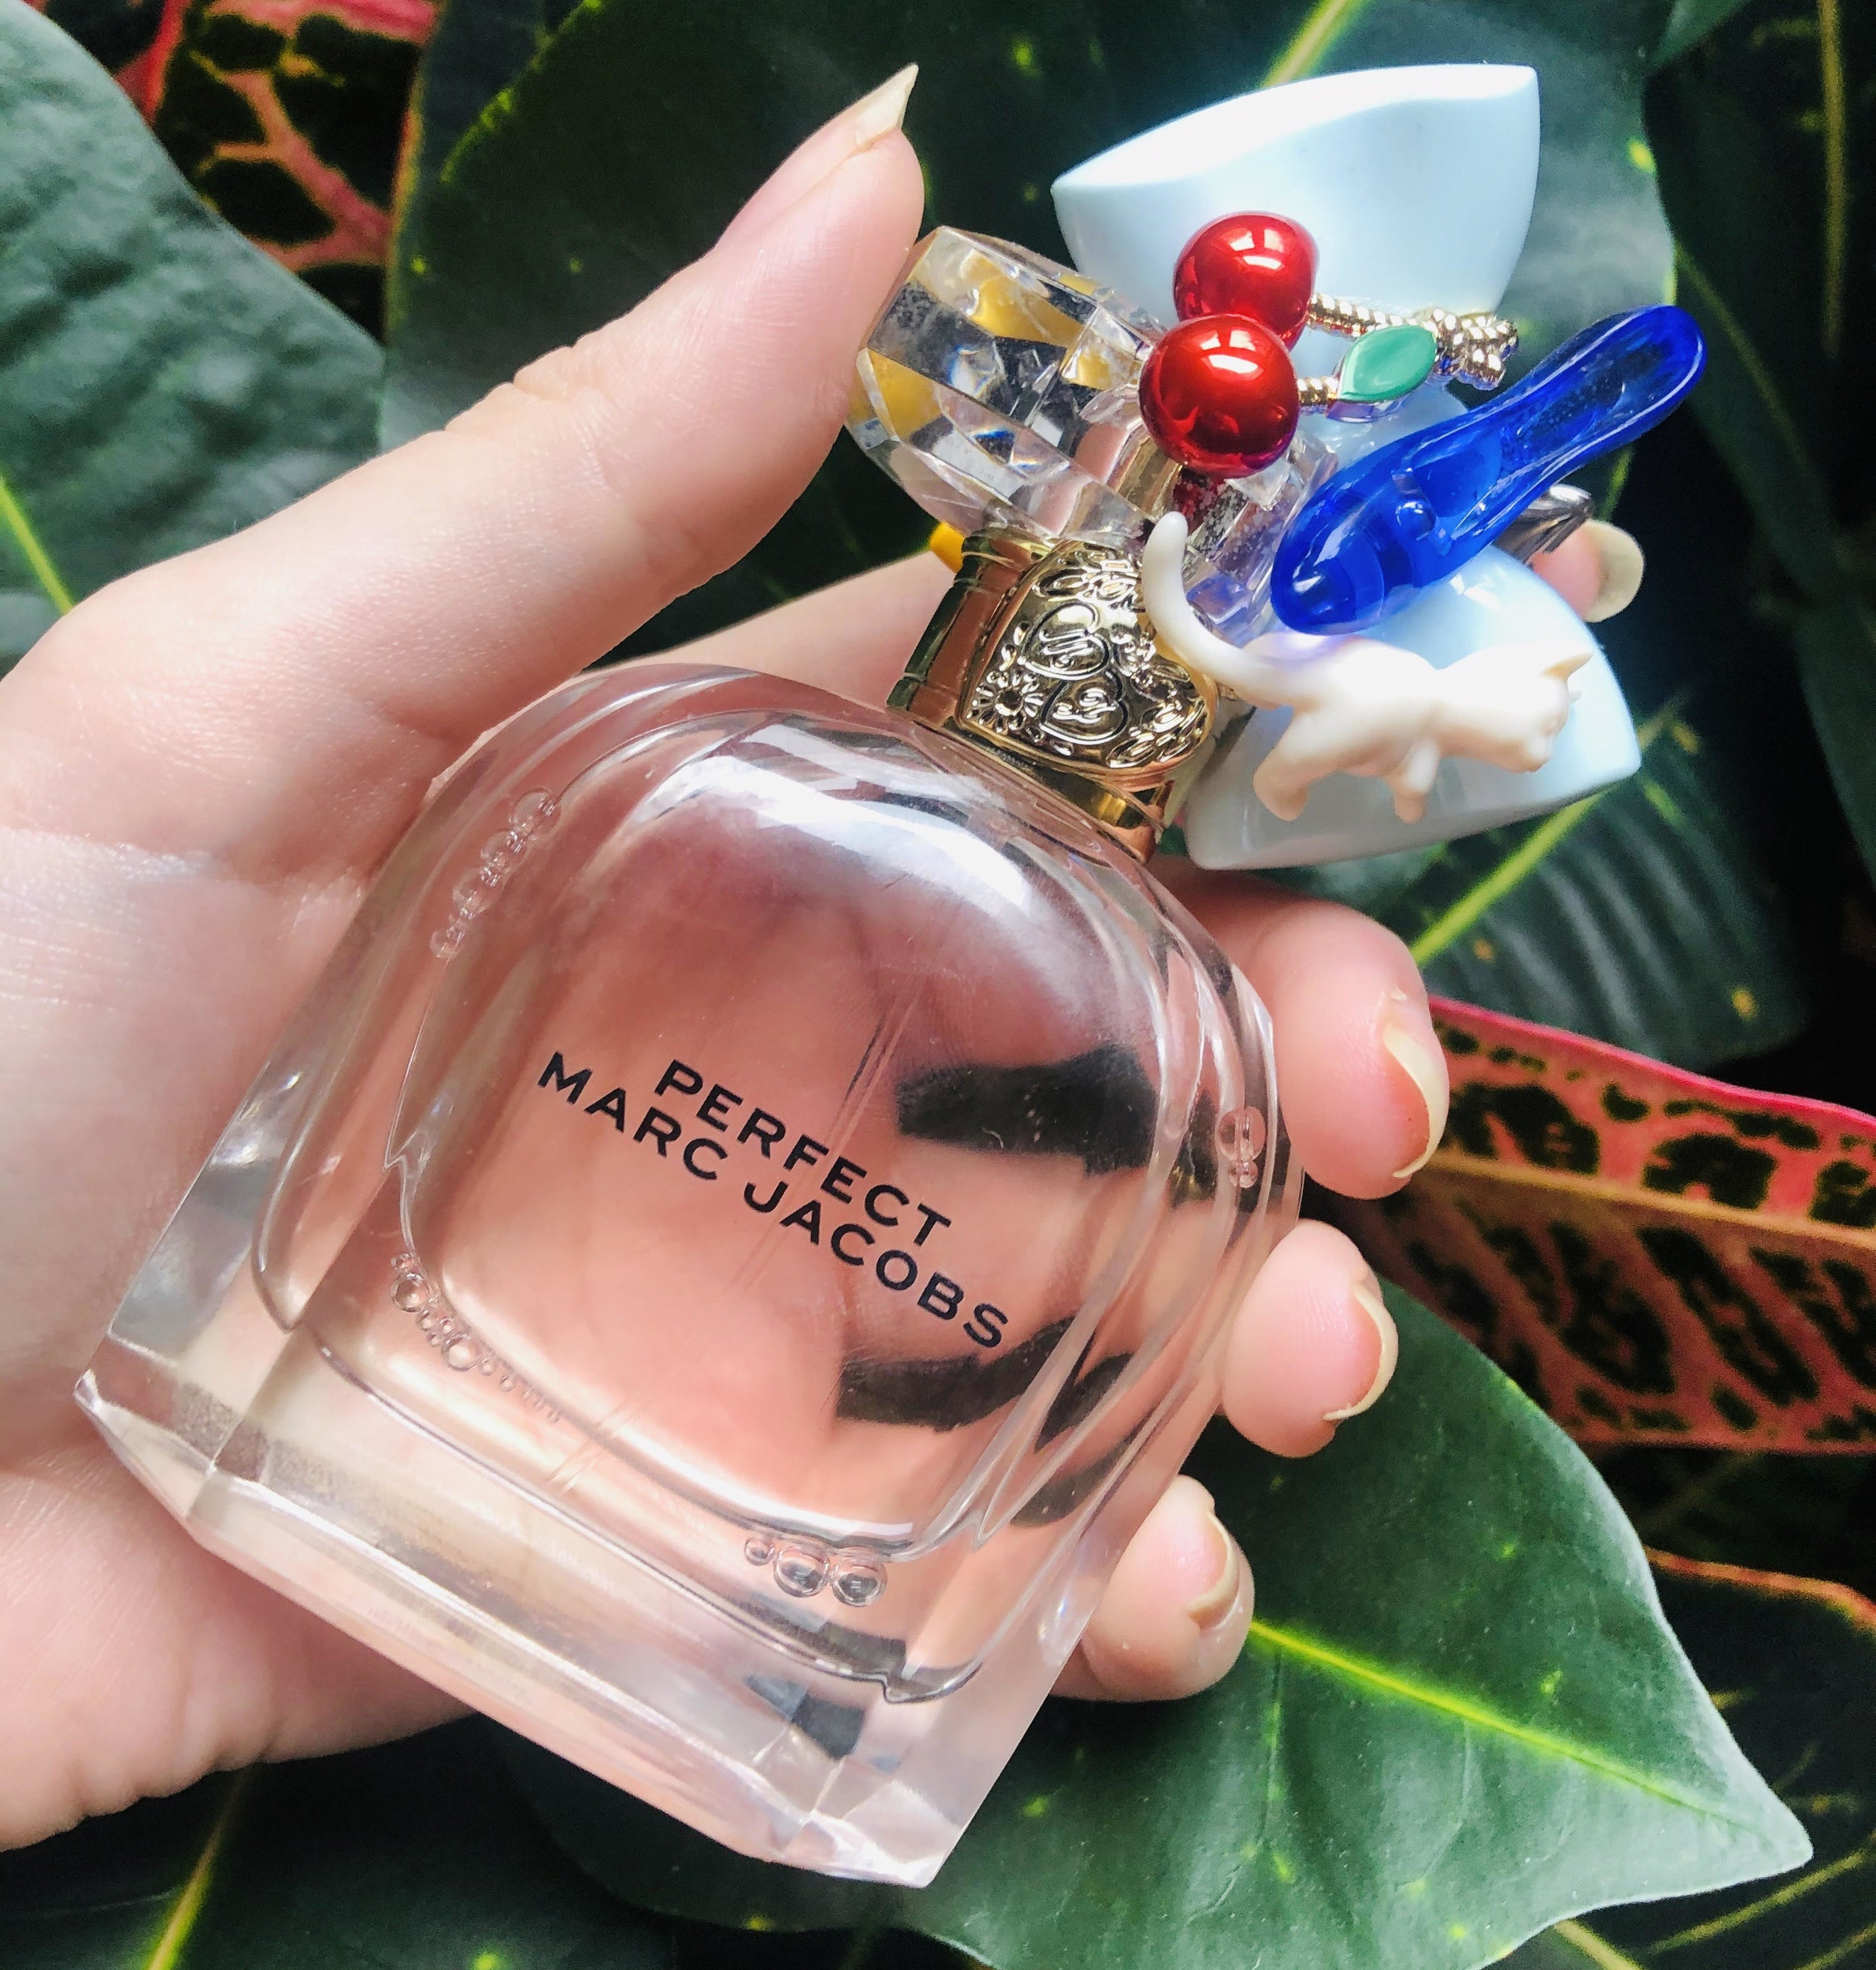 A person holding the perfume in front of a plant